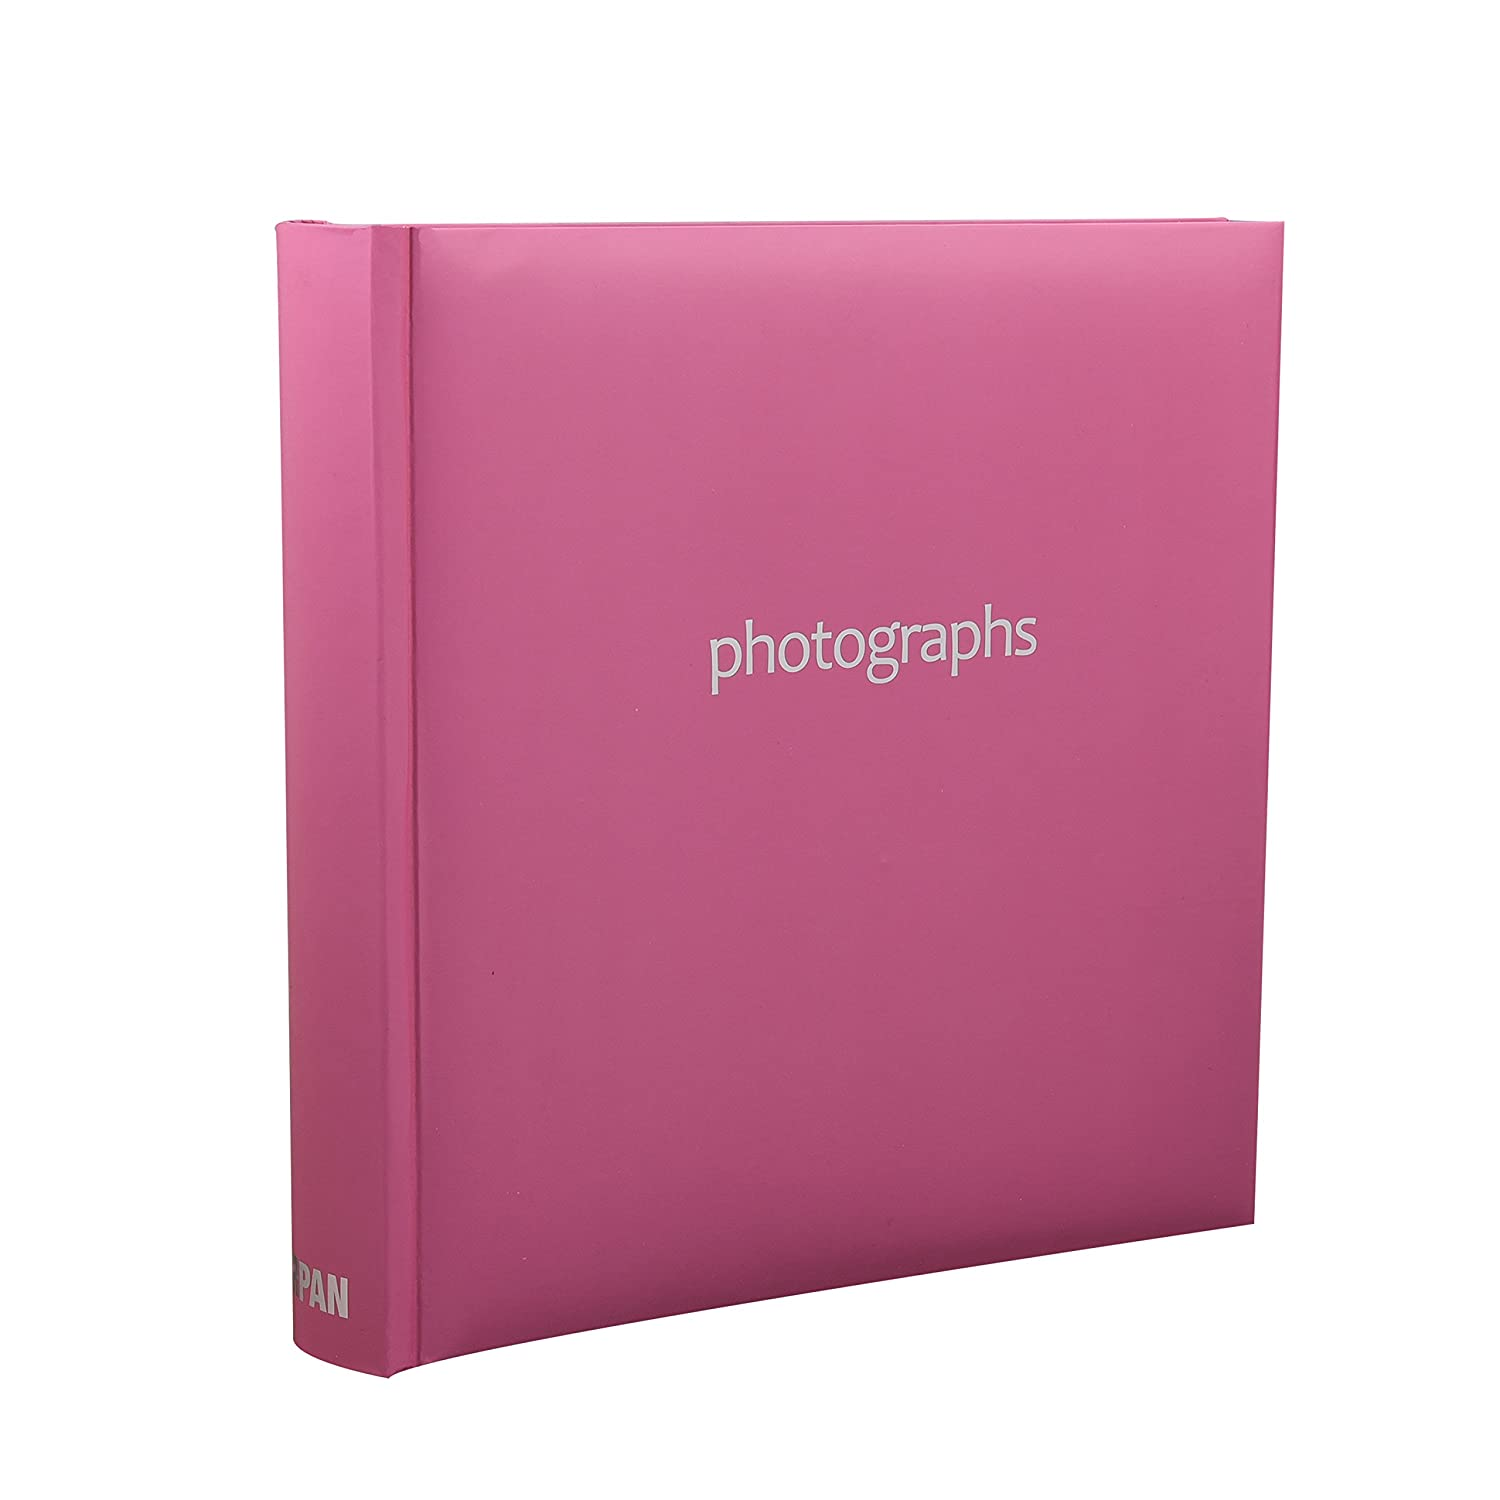 Arpan 10 x 15 cm Hot Pink Memo Album for 200 Photos SM200PK